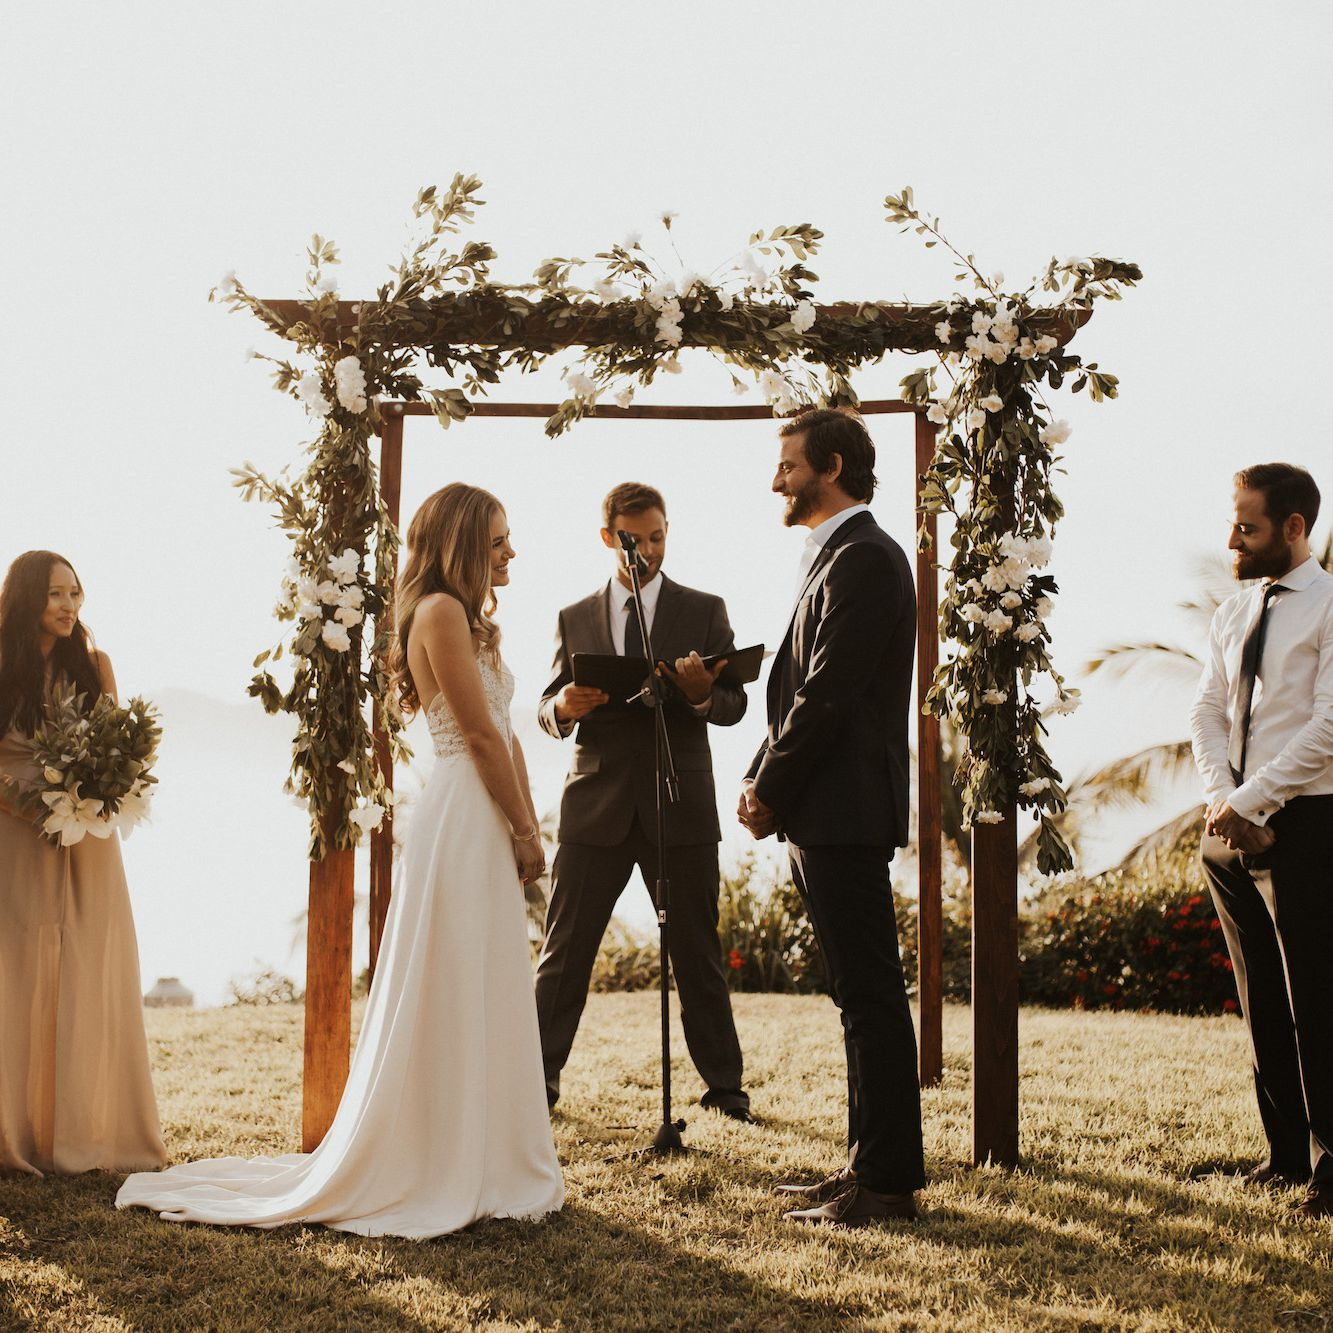 8 Questions for Officiants Couples Should Be Asking